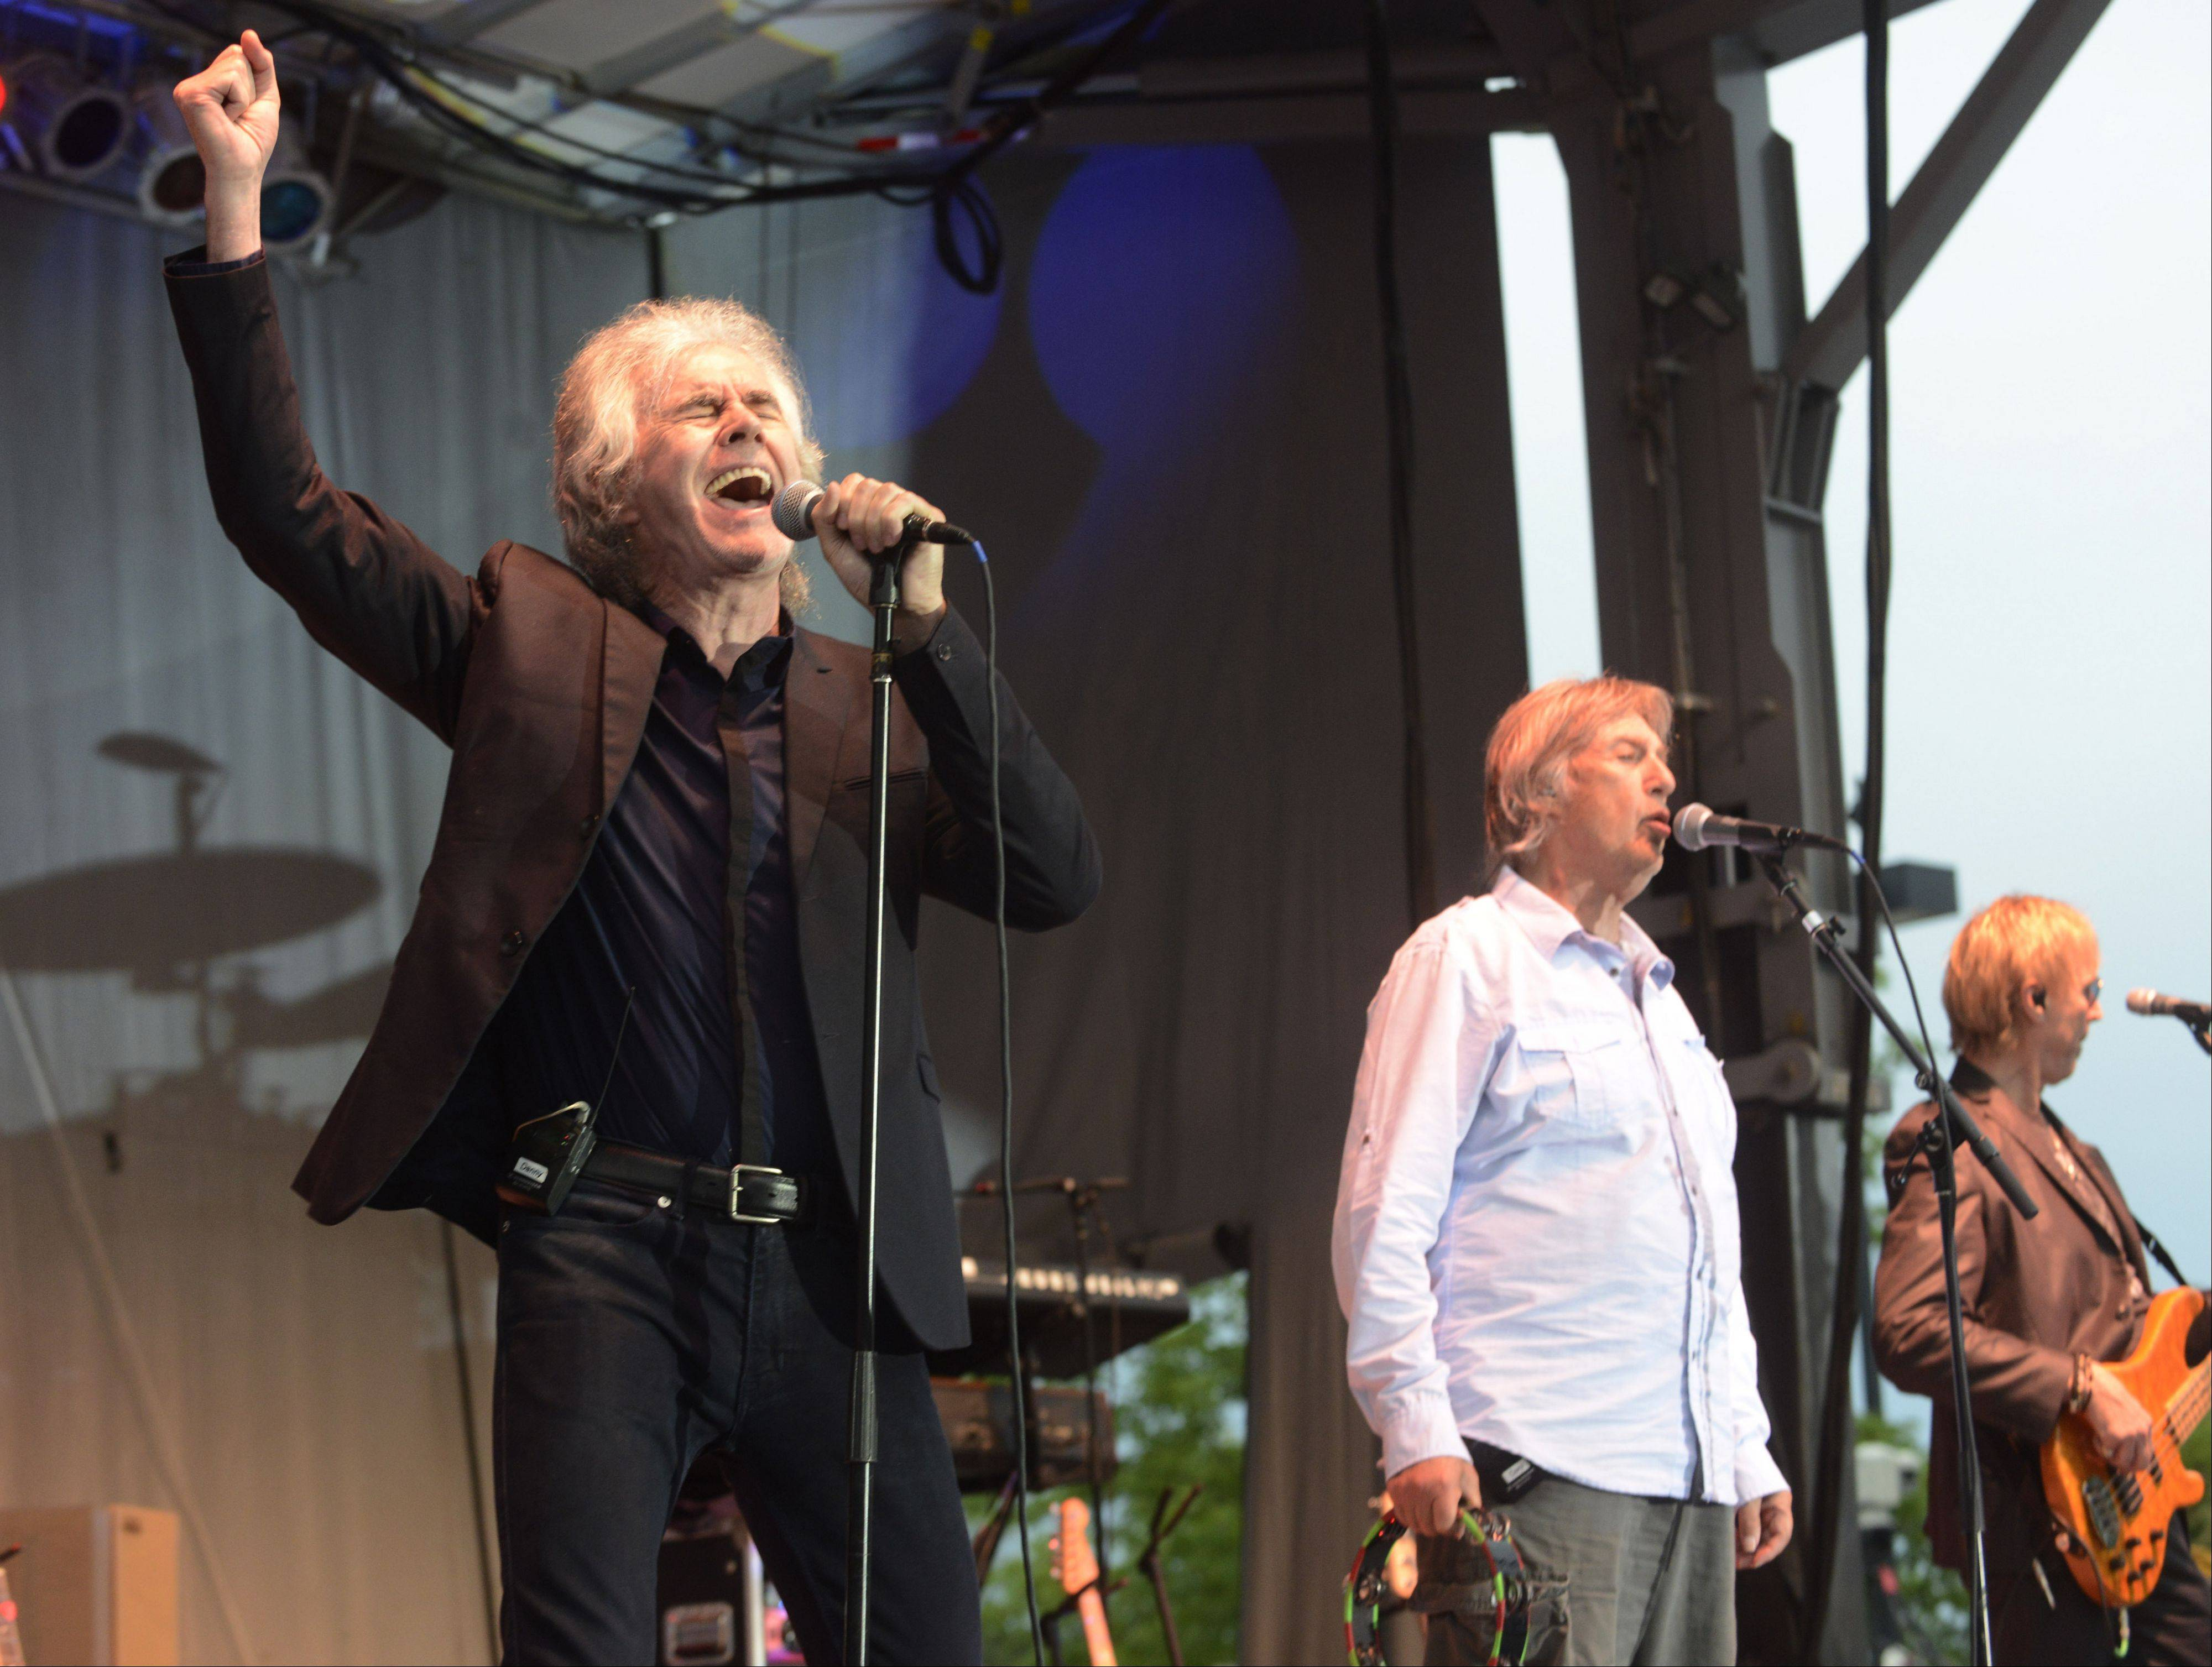 Danny Hutton, left, sings with Three Dog Night on Tuesday as part of the Mid-Summer Classics Concert Series in Elk Grove Village.